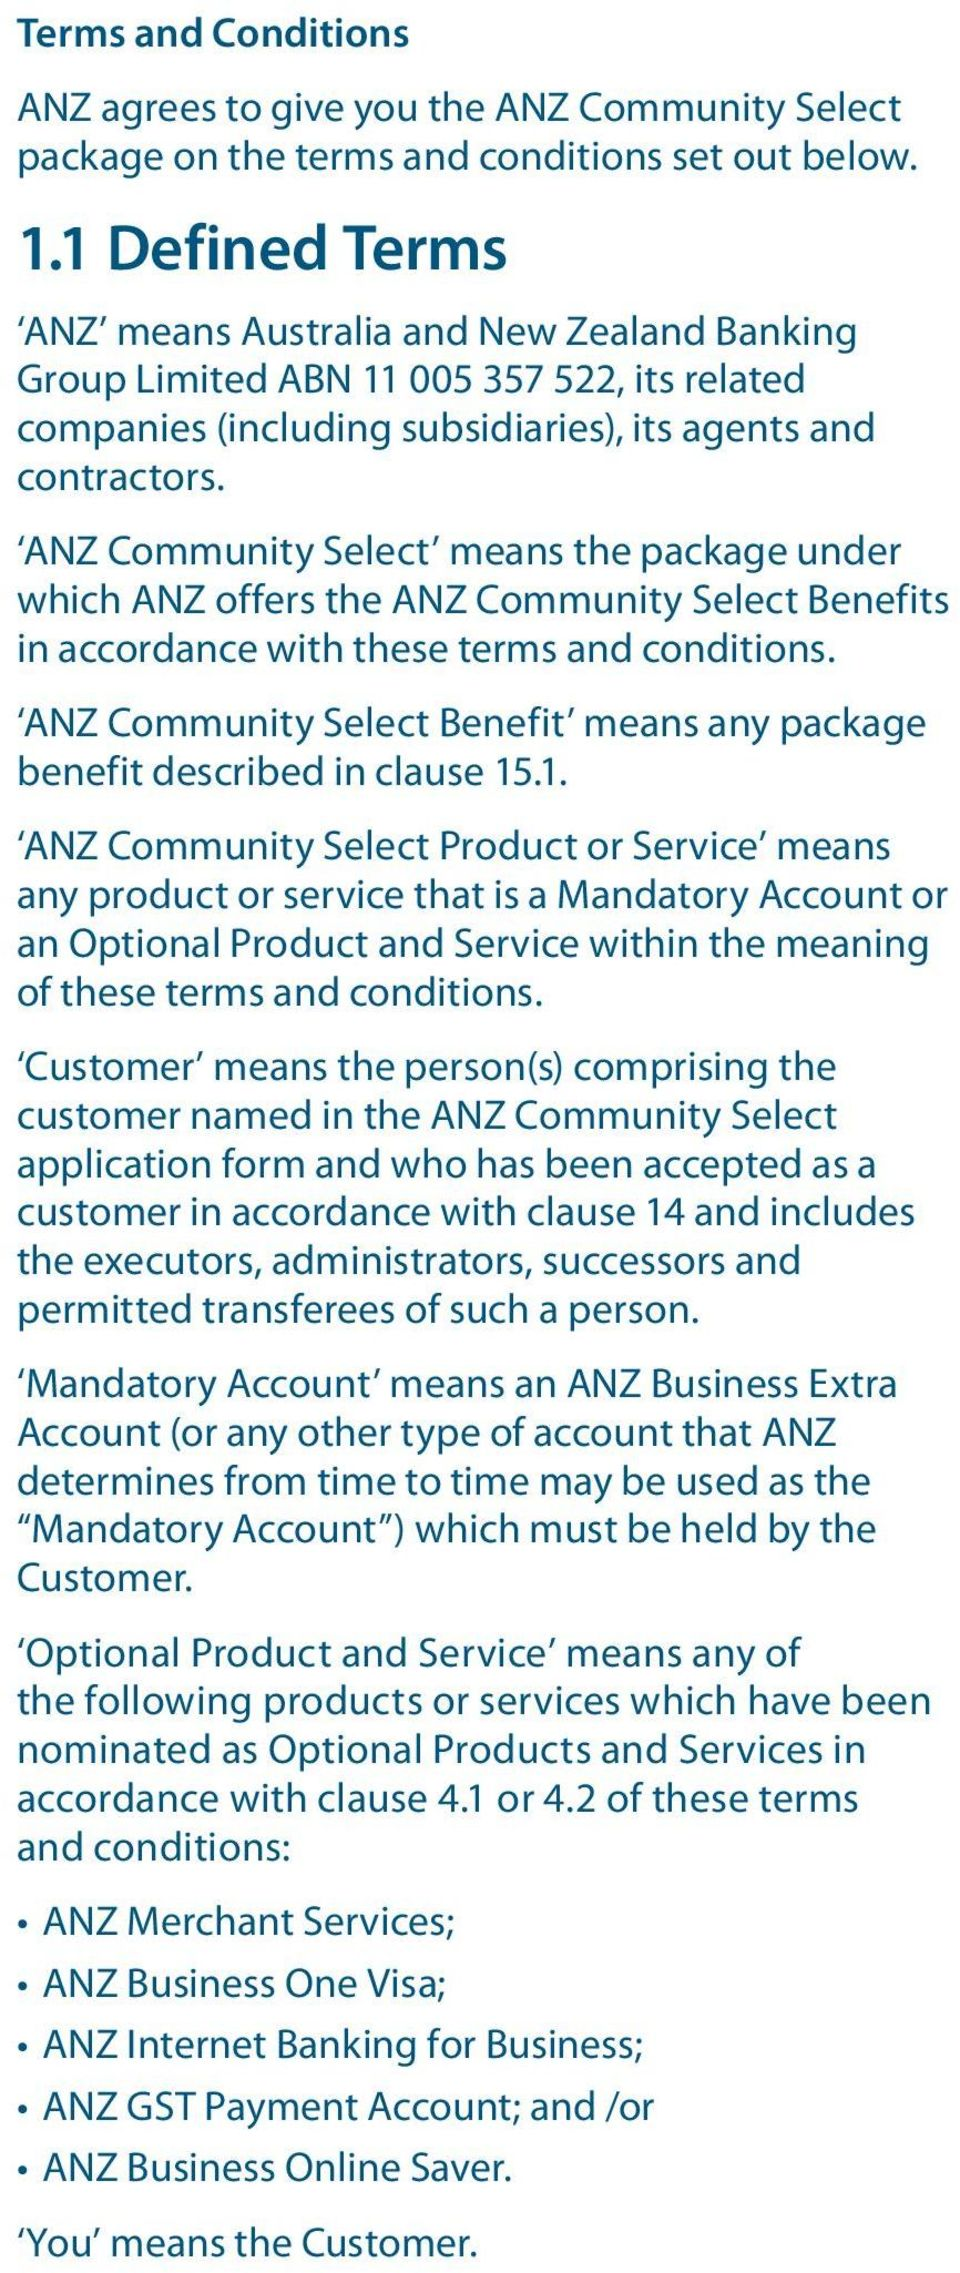 ANZ Community Select means the package under which ANZ offers the ANZ Community Select Benefits in accordance with these terms and conditions.